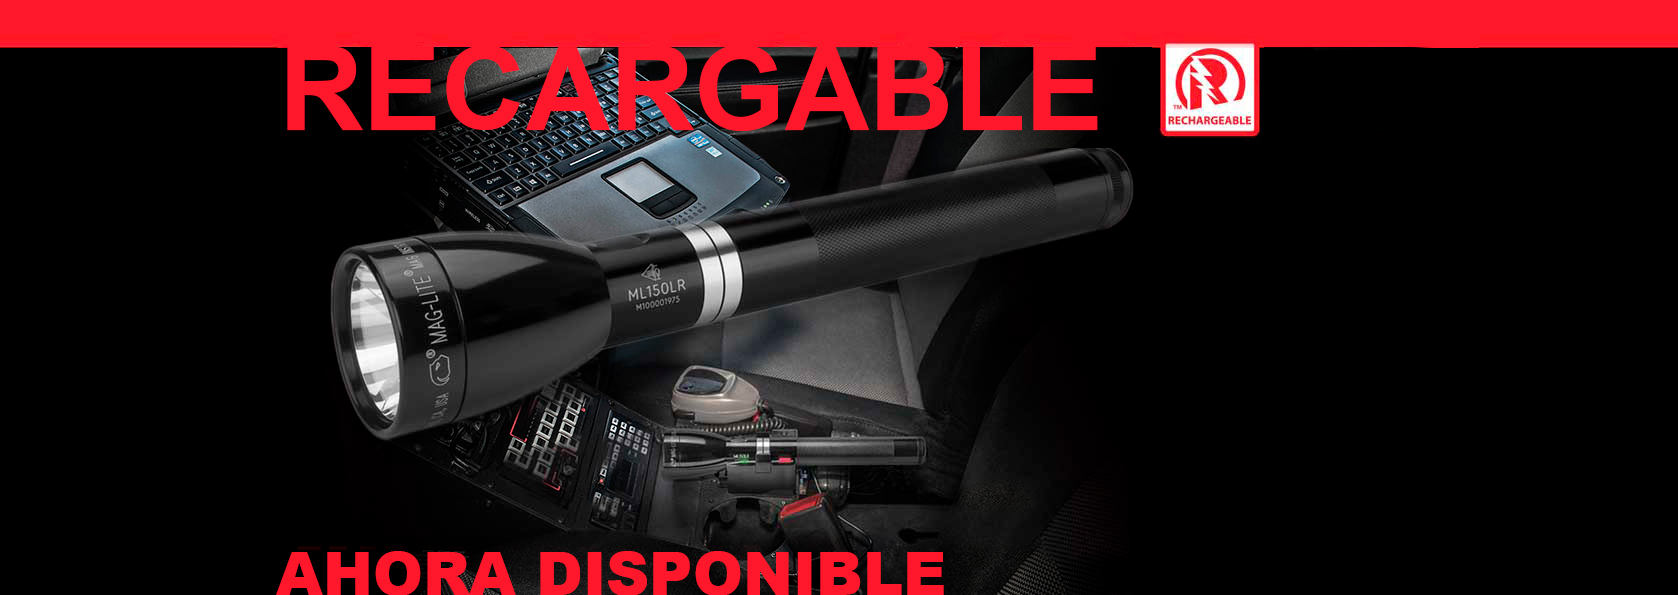 MAGLITE ML150LR - Sistema Recargable